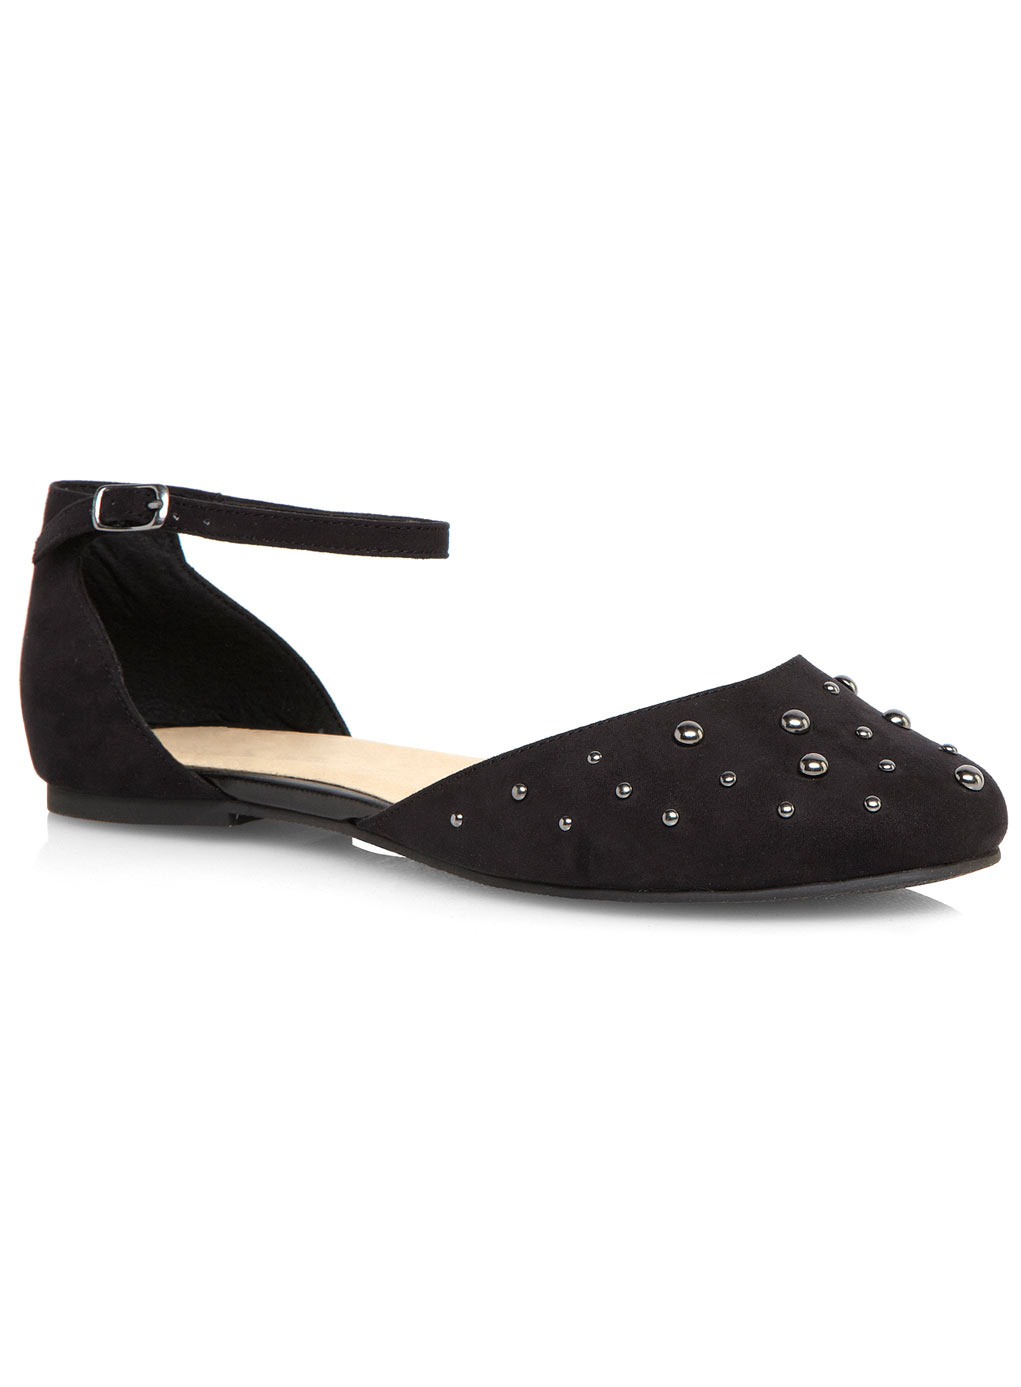 Gracie Black Studded Open Pump - predominant colour: black; occasions: casual, creative work; material: faux leather; heel height: flat; embellishment: studs; ankle detail: ankle strap; toe: round toe; style: ballerinas / pumps; finish: plain; pattern: plain; season: s/s 2014